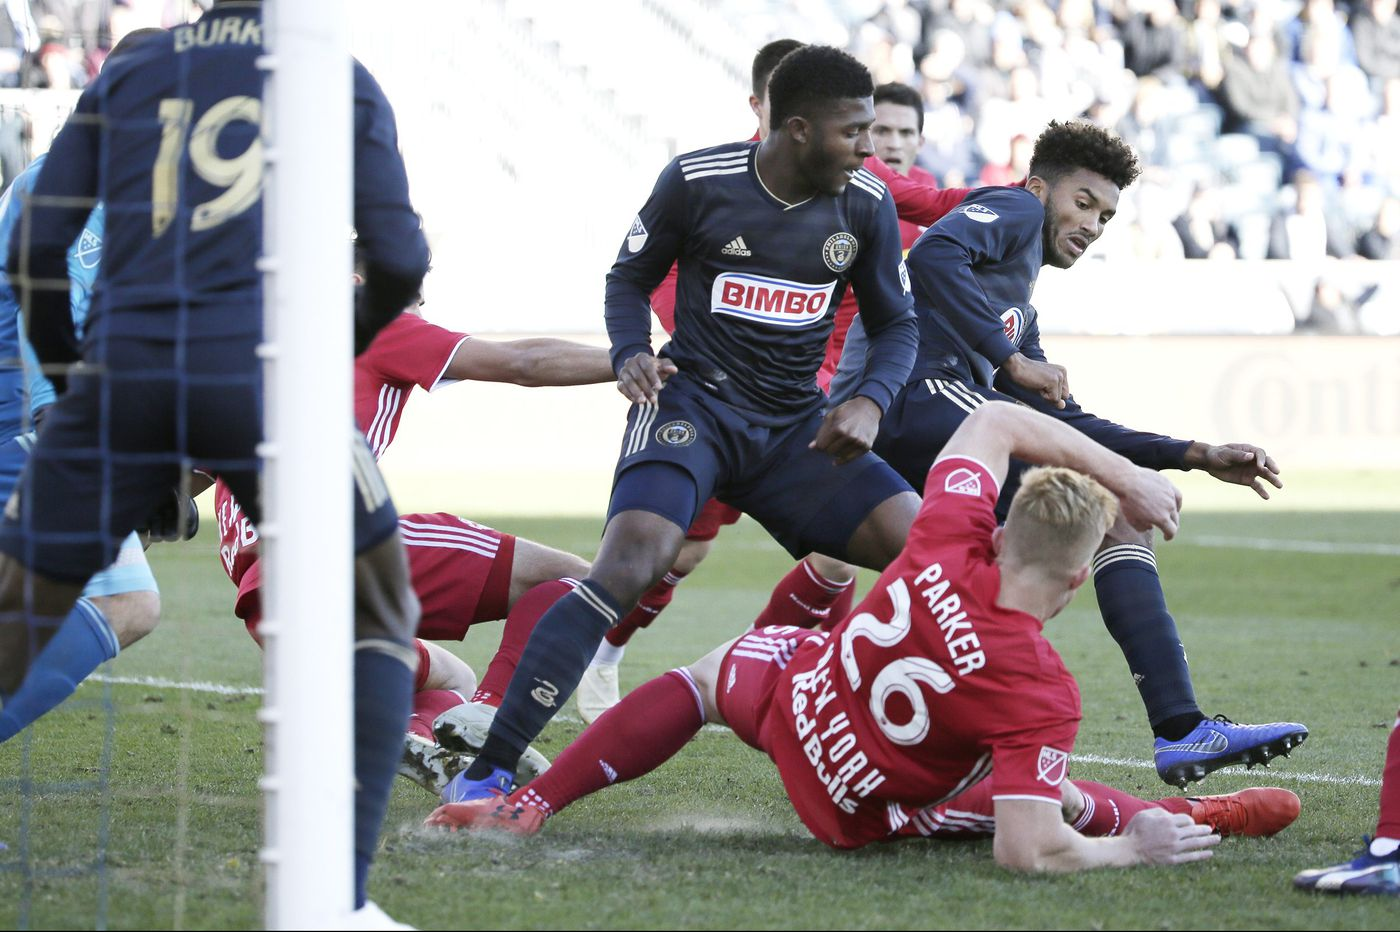 Union's Mark McKenzie ready for his first start this season, as Under-20 World Cup draws closer